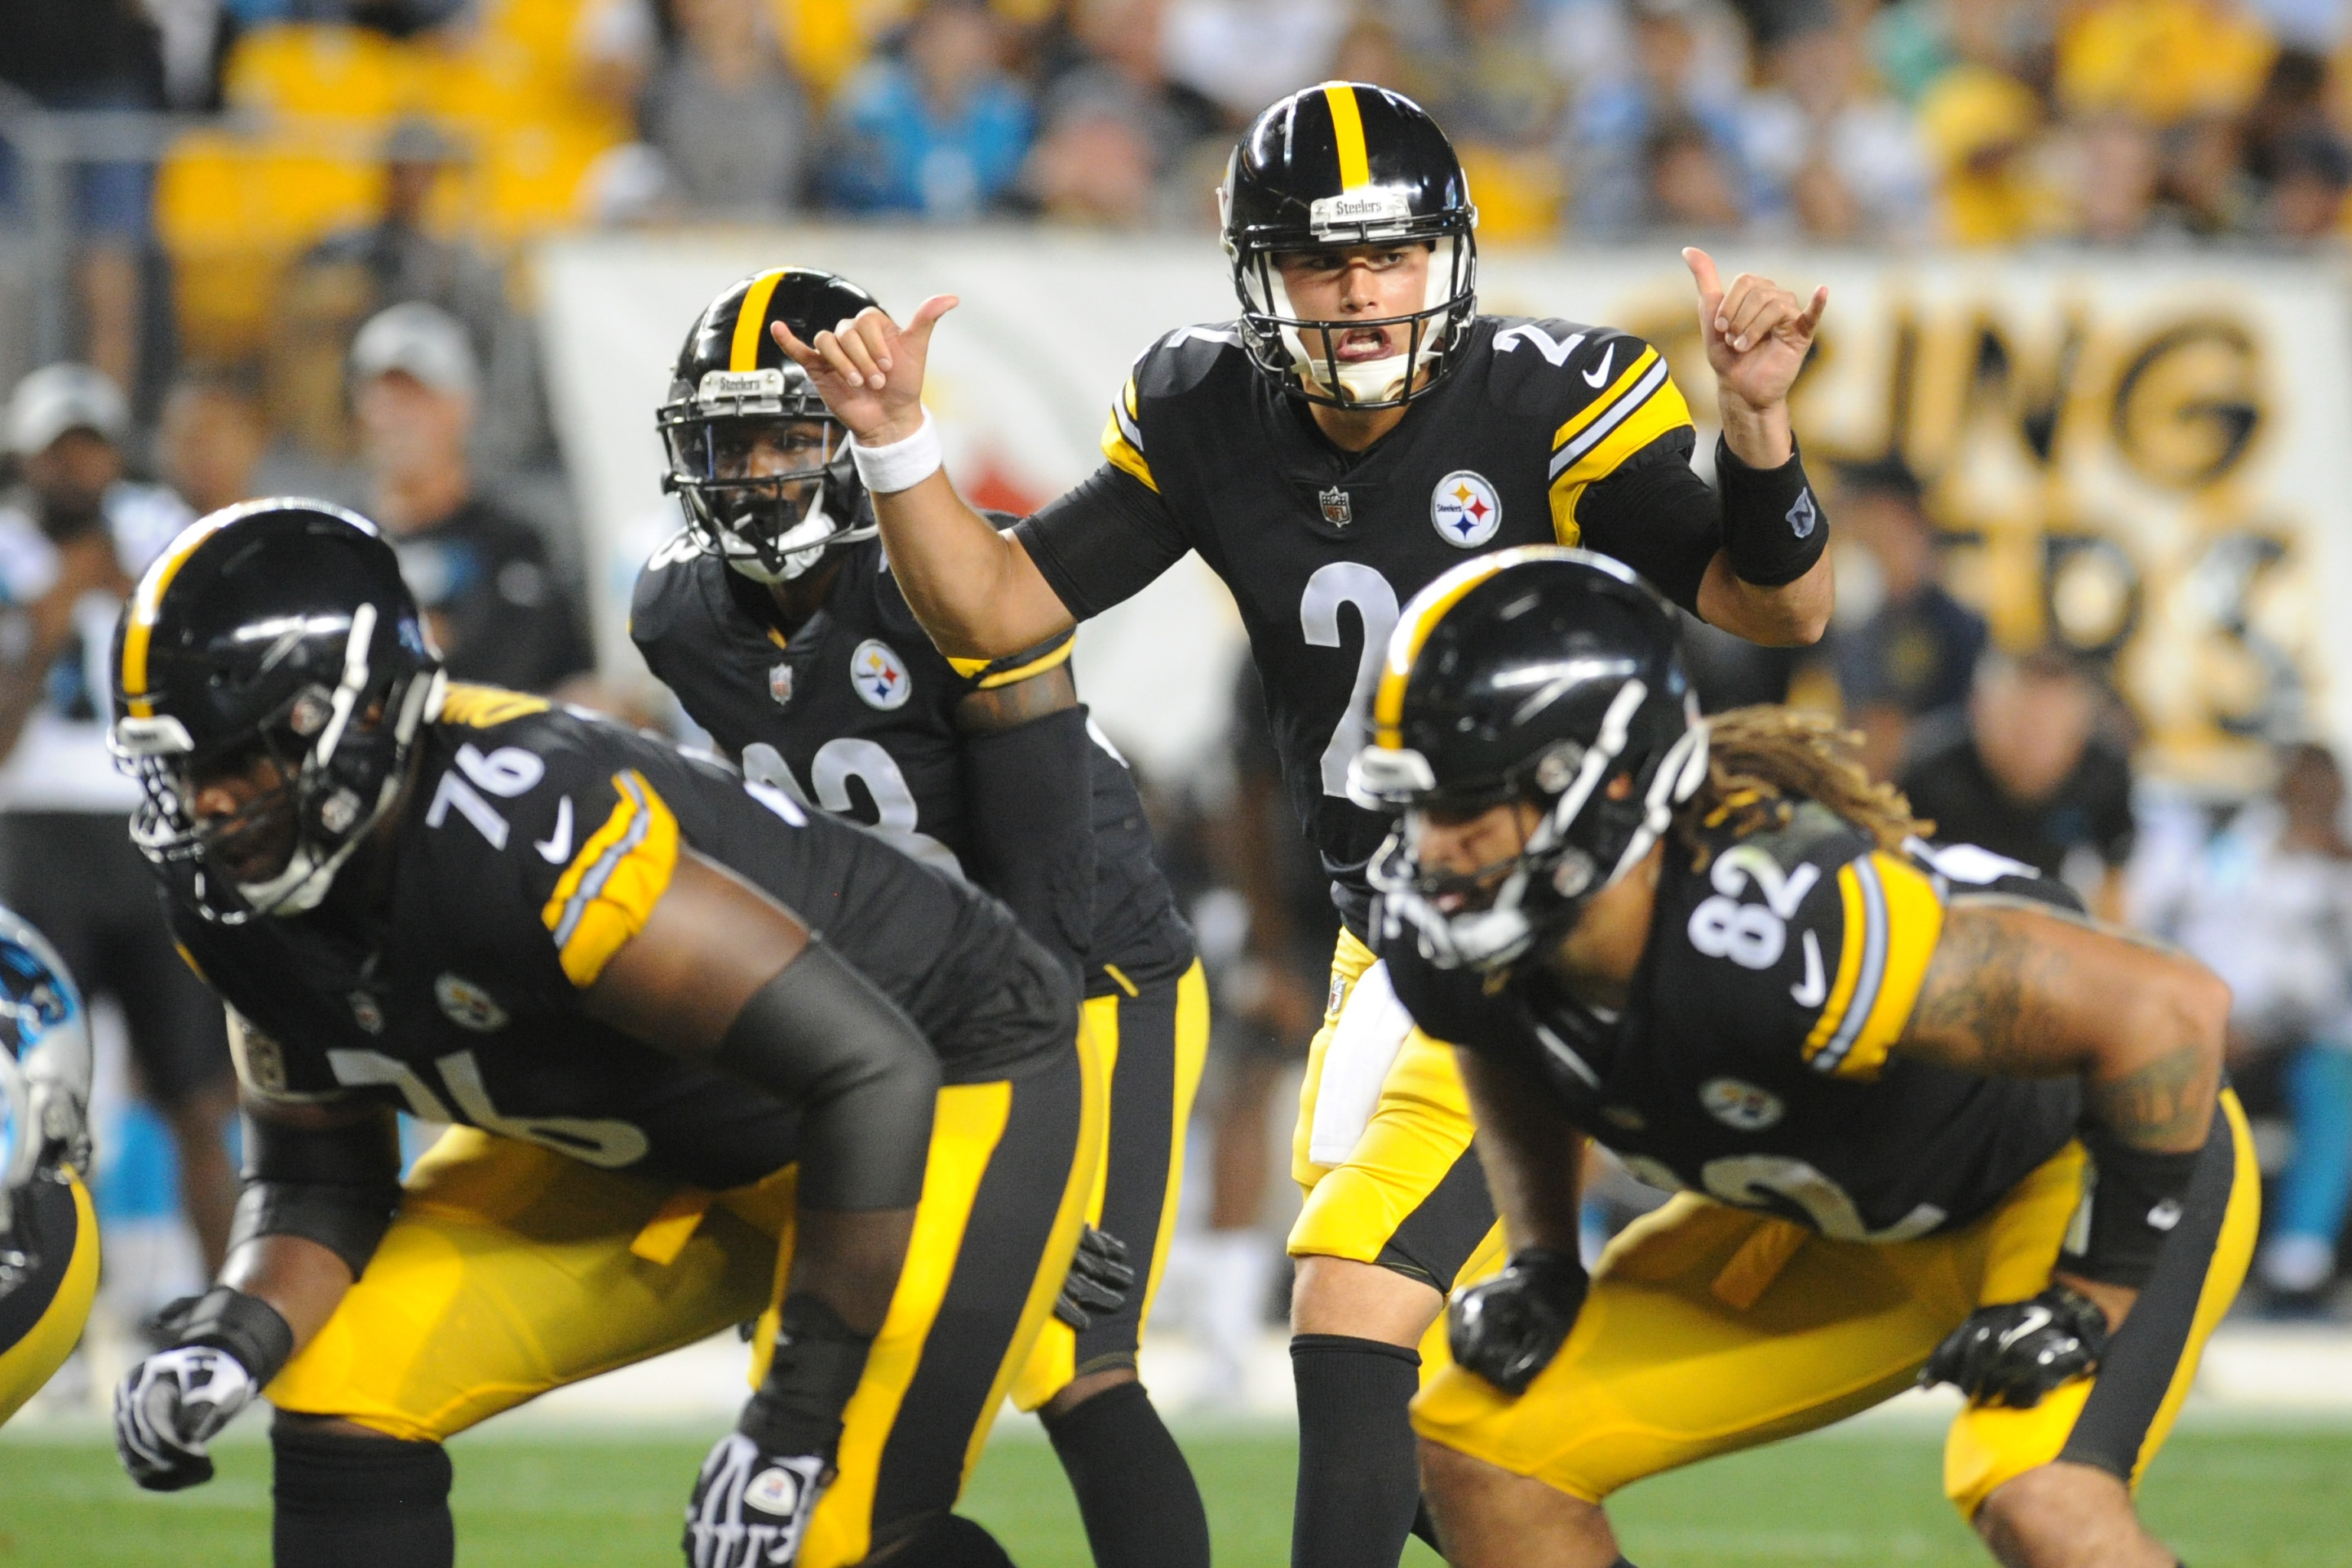 NFL: Carolina Panthers at Pittsburgh Steelers